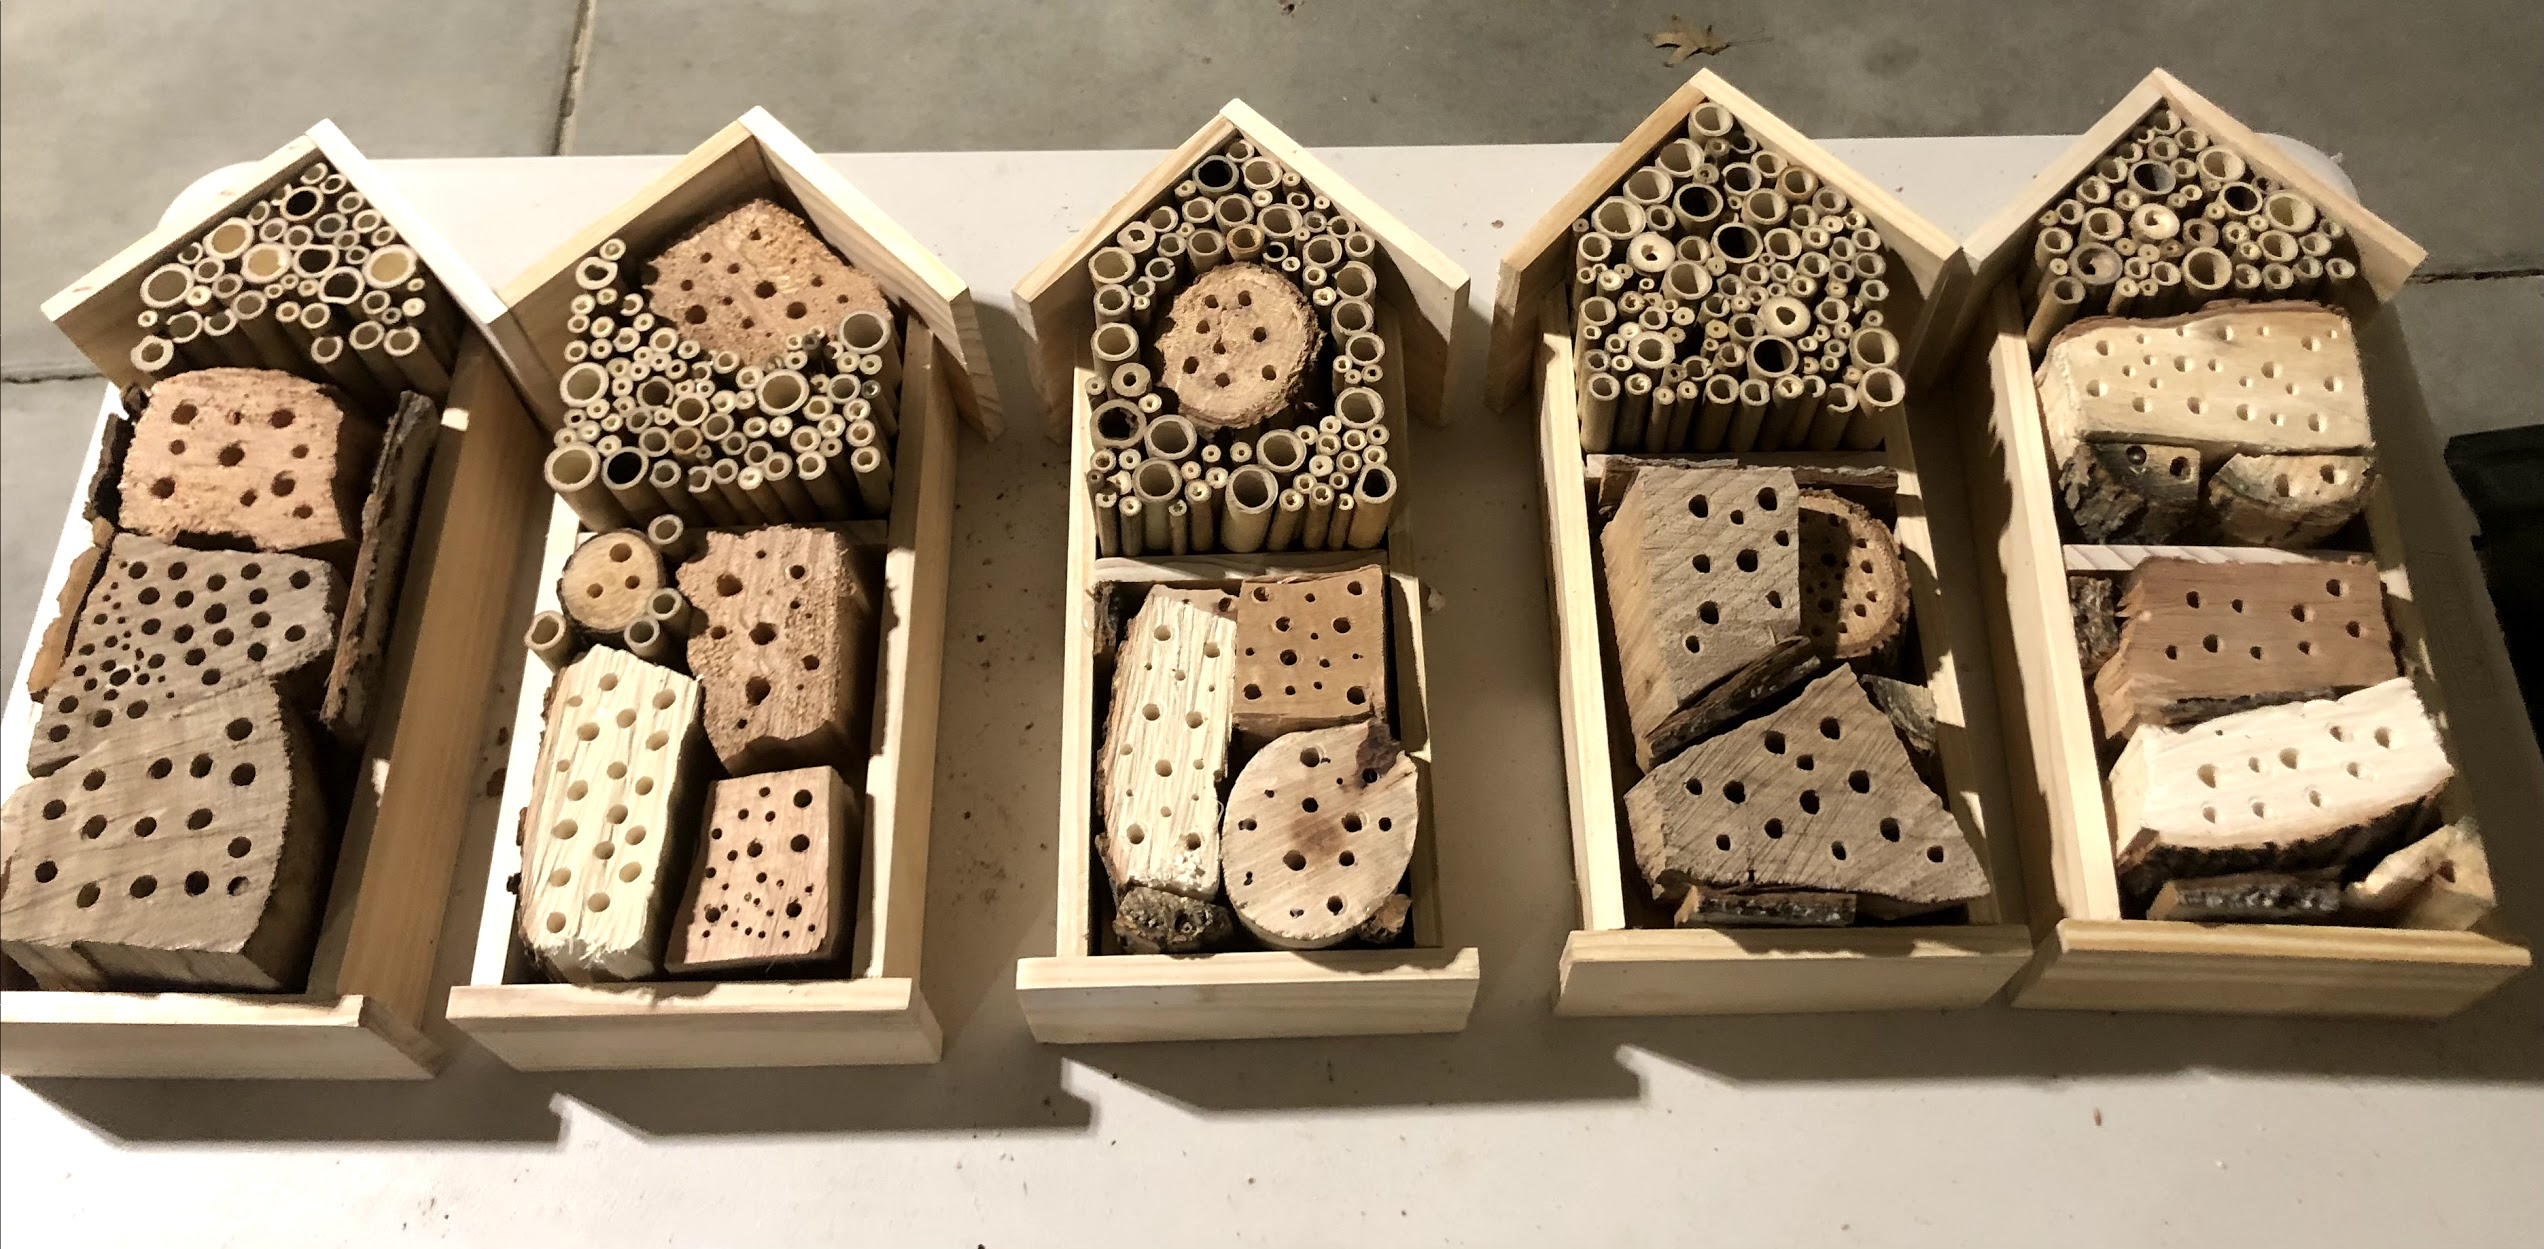 five house shaped bee hotels with various holes drilled into the front